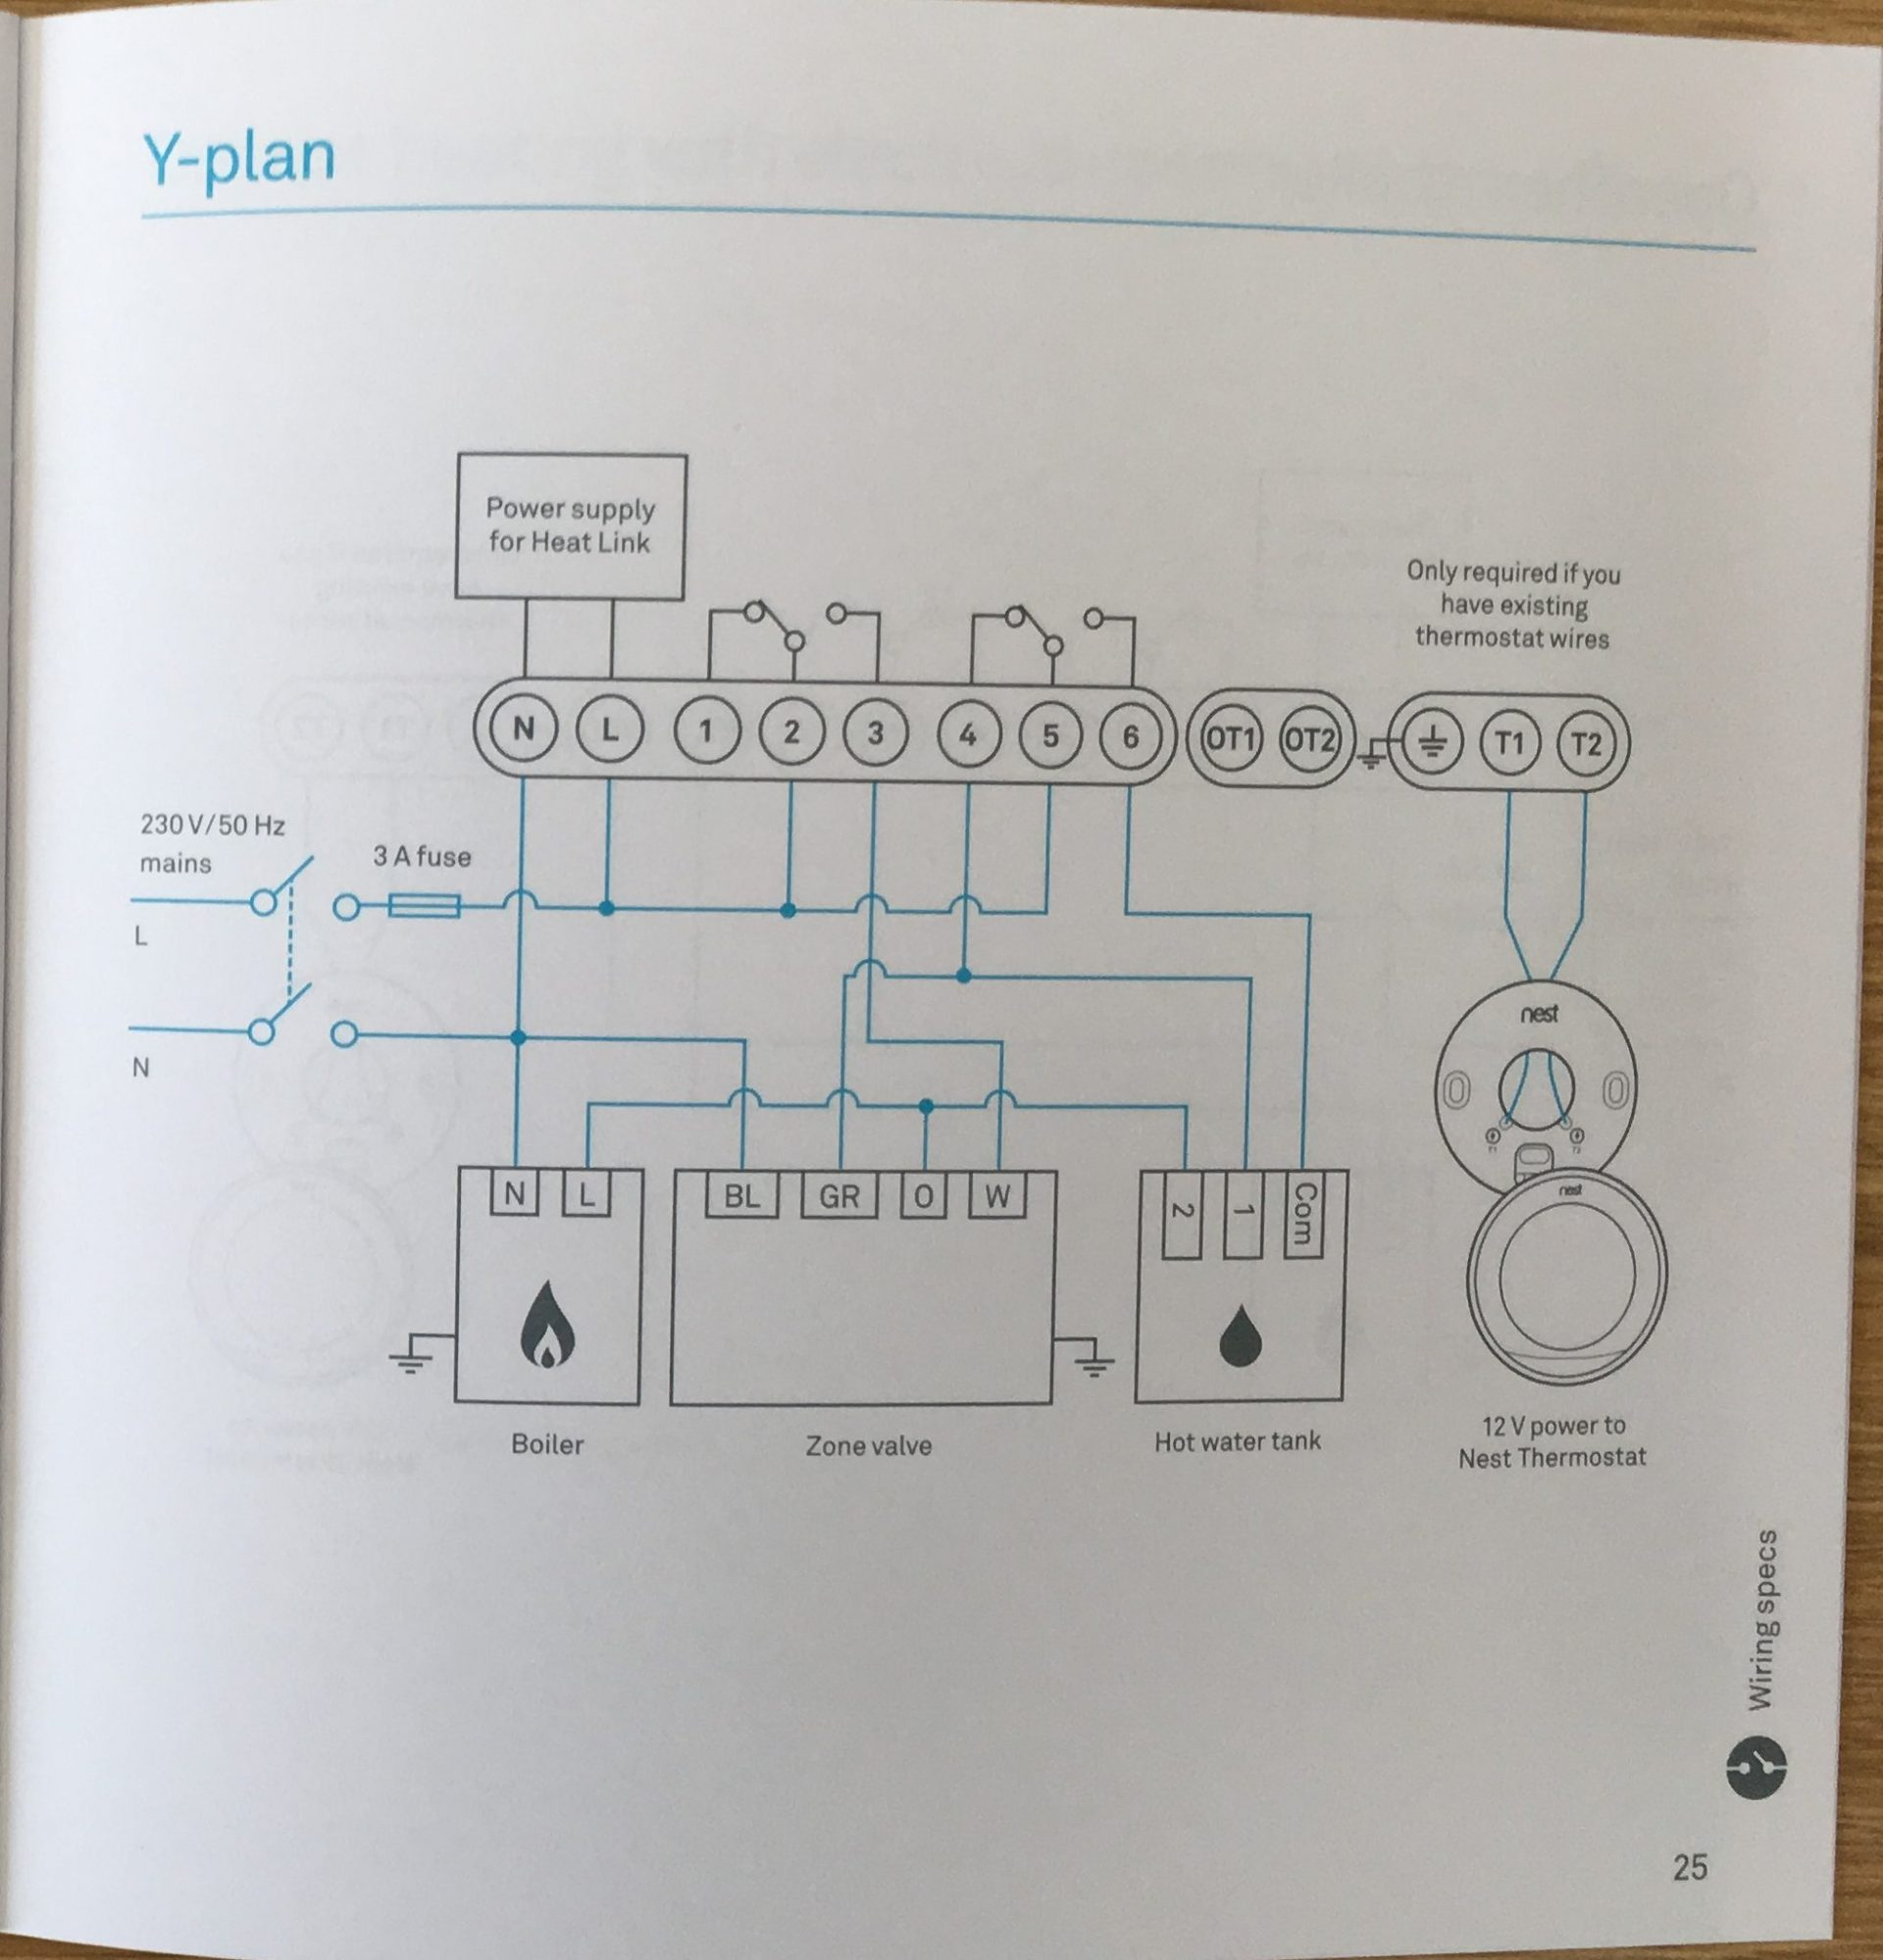 How To Install The Nest Learning Thermostat (3Rd Gen) In A Y-Plan - Nest Wiring Diagram Thermostat